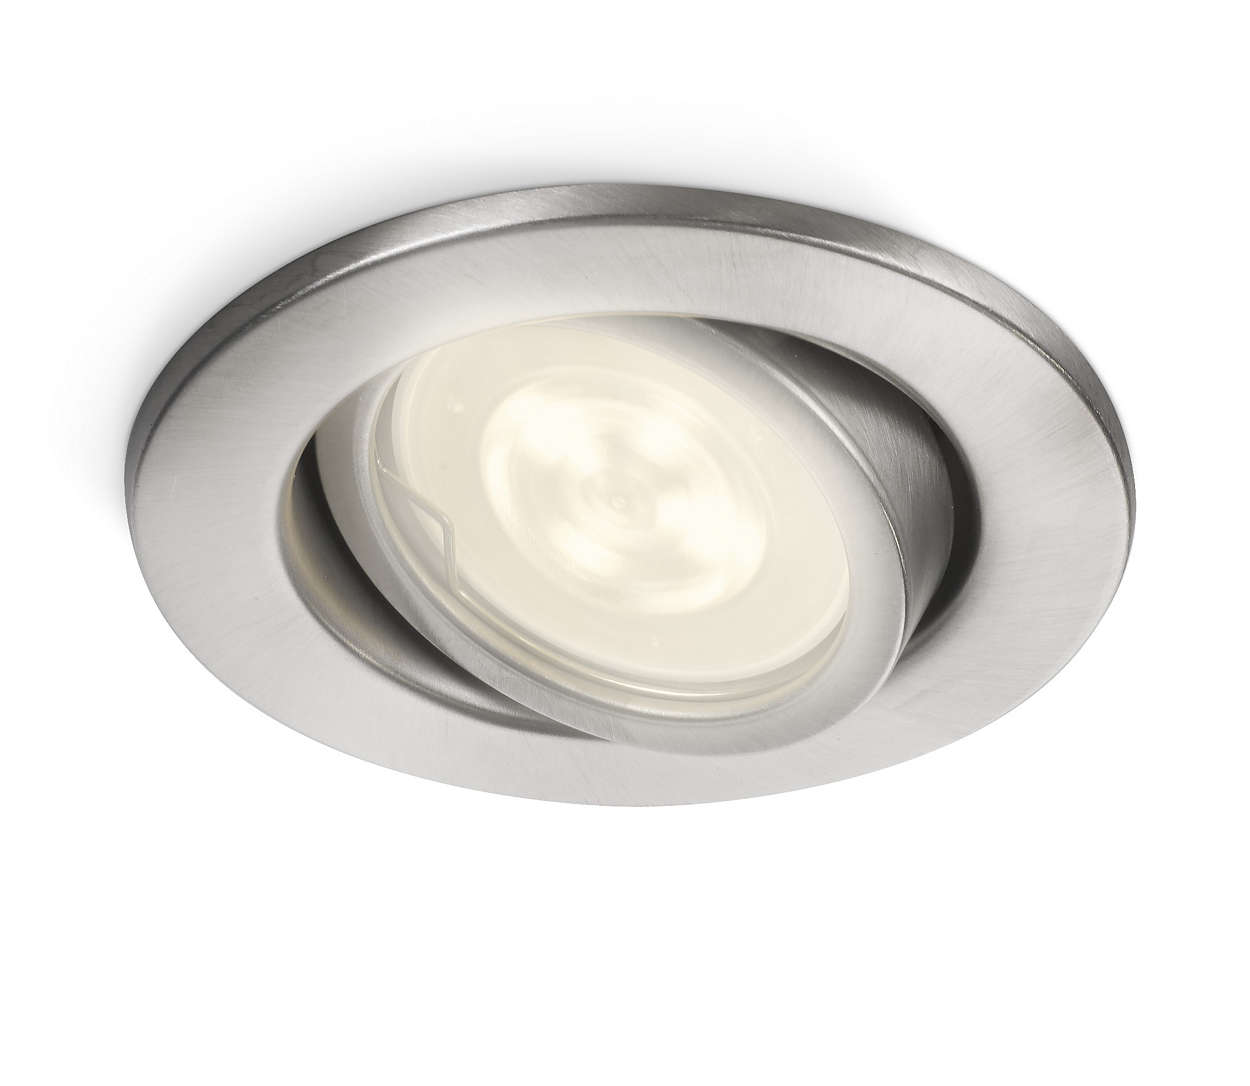 Recessed spot light 172894716 philips download image aloadofball